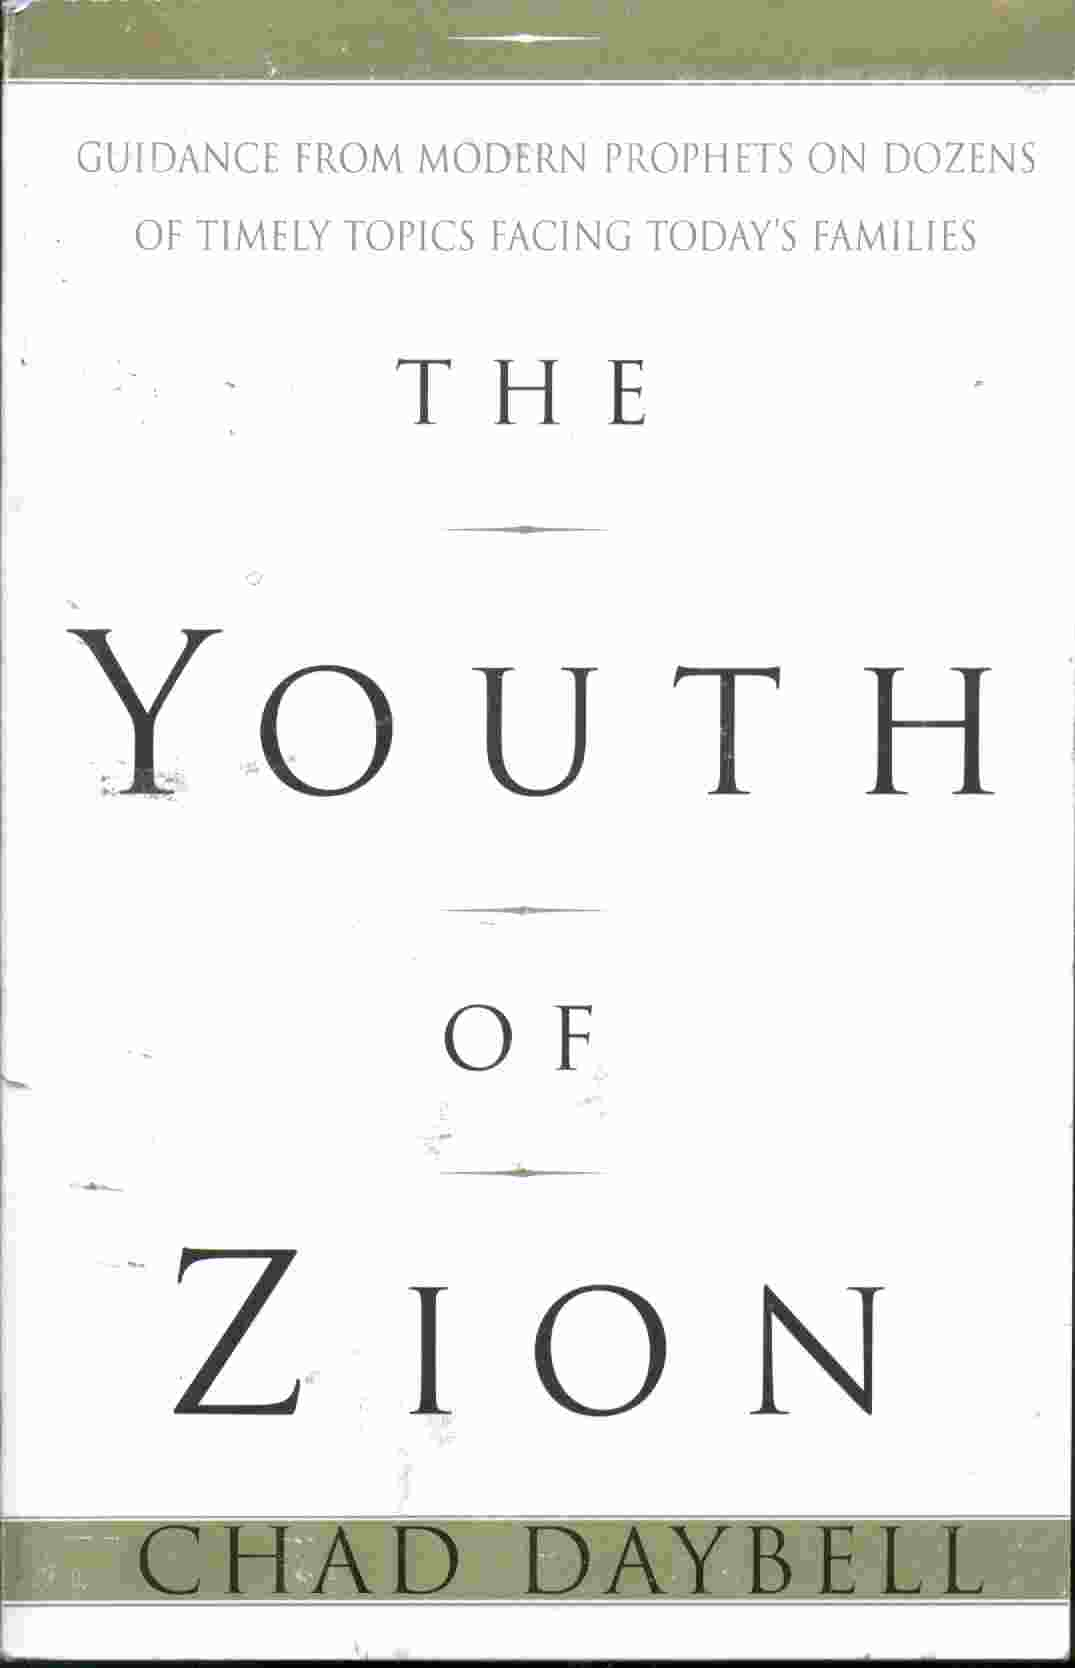 Image for THE YOUTH OF ZION - Guidance from the Modern Prophets on Dozens of Timely Topics Facing Today's Families